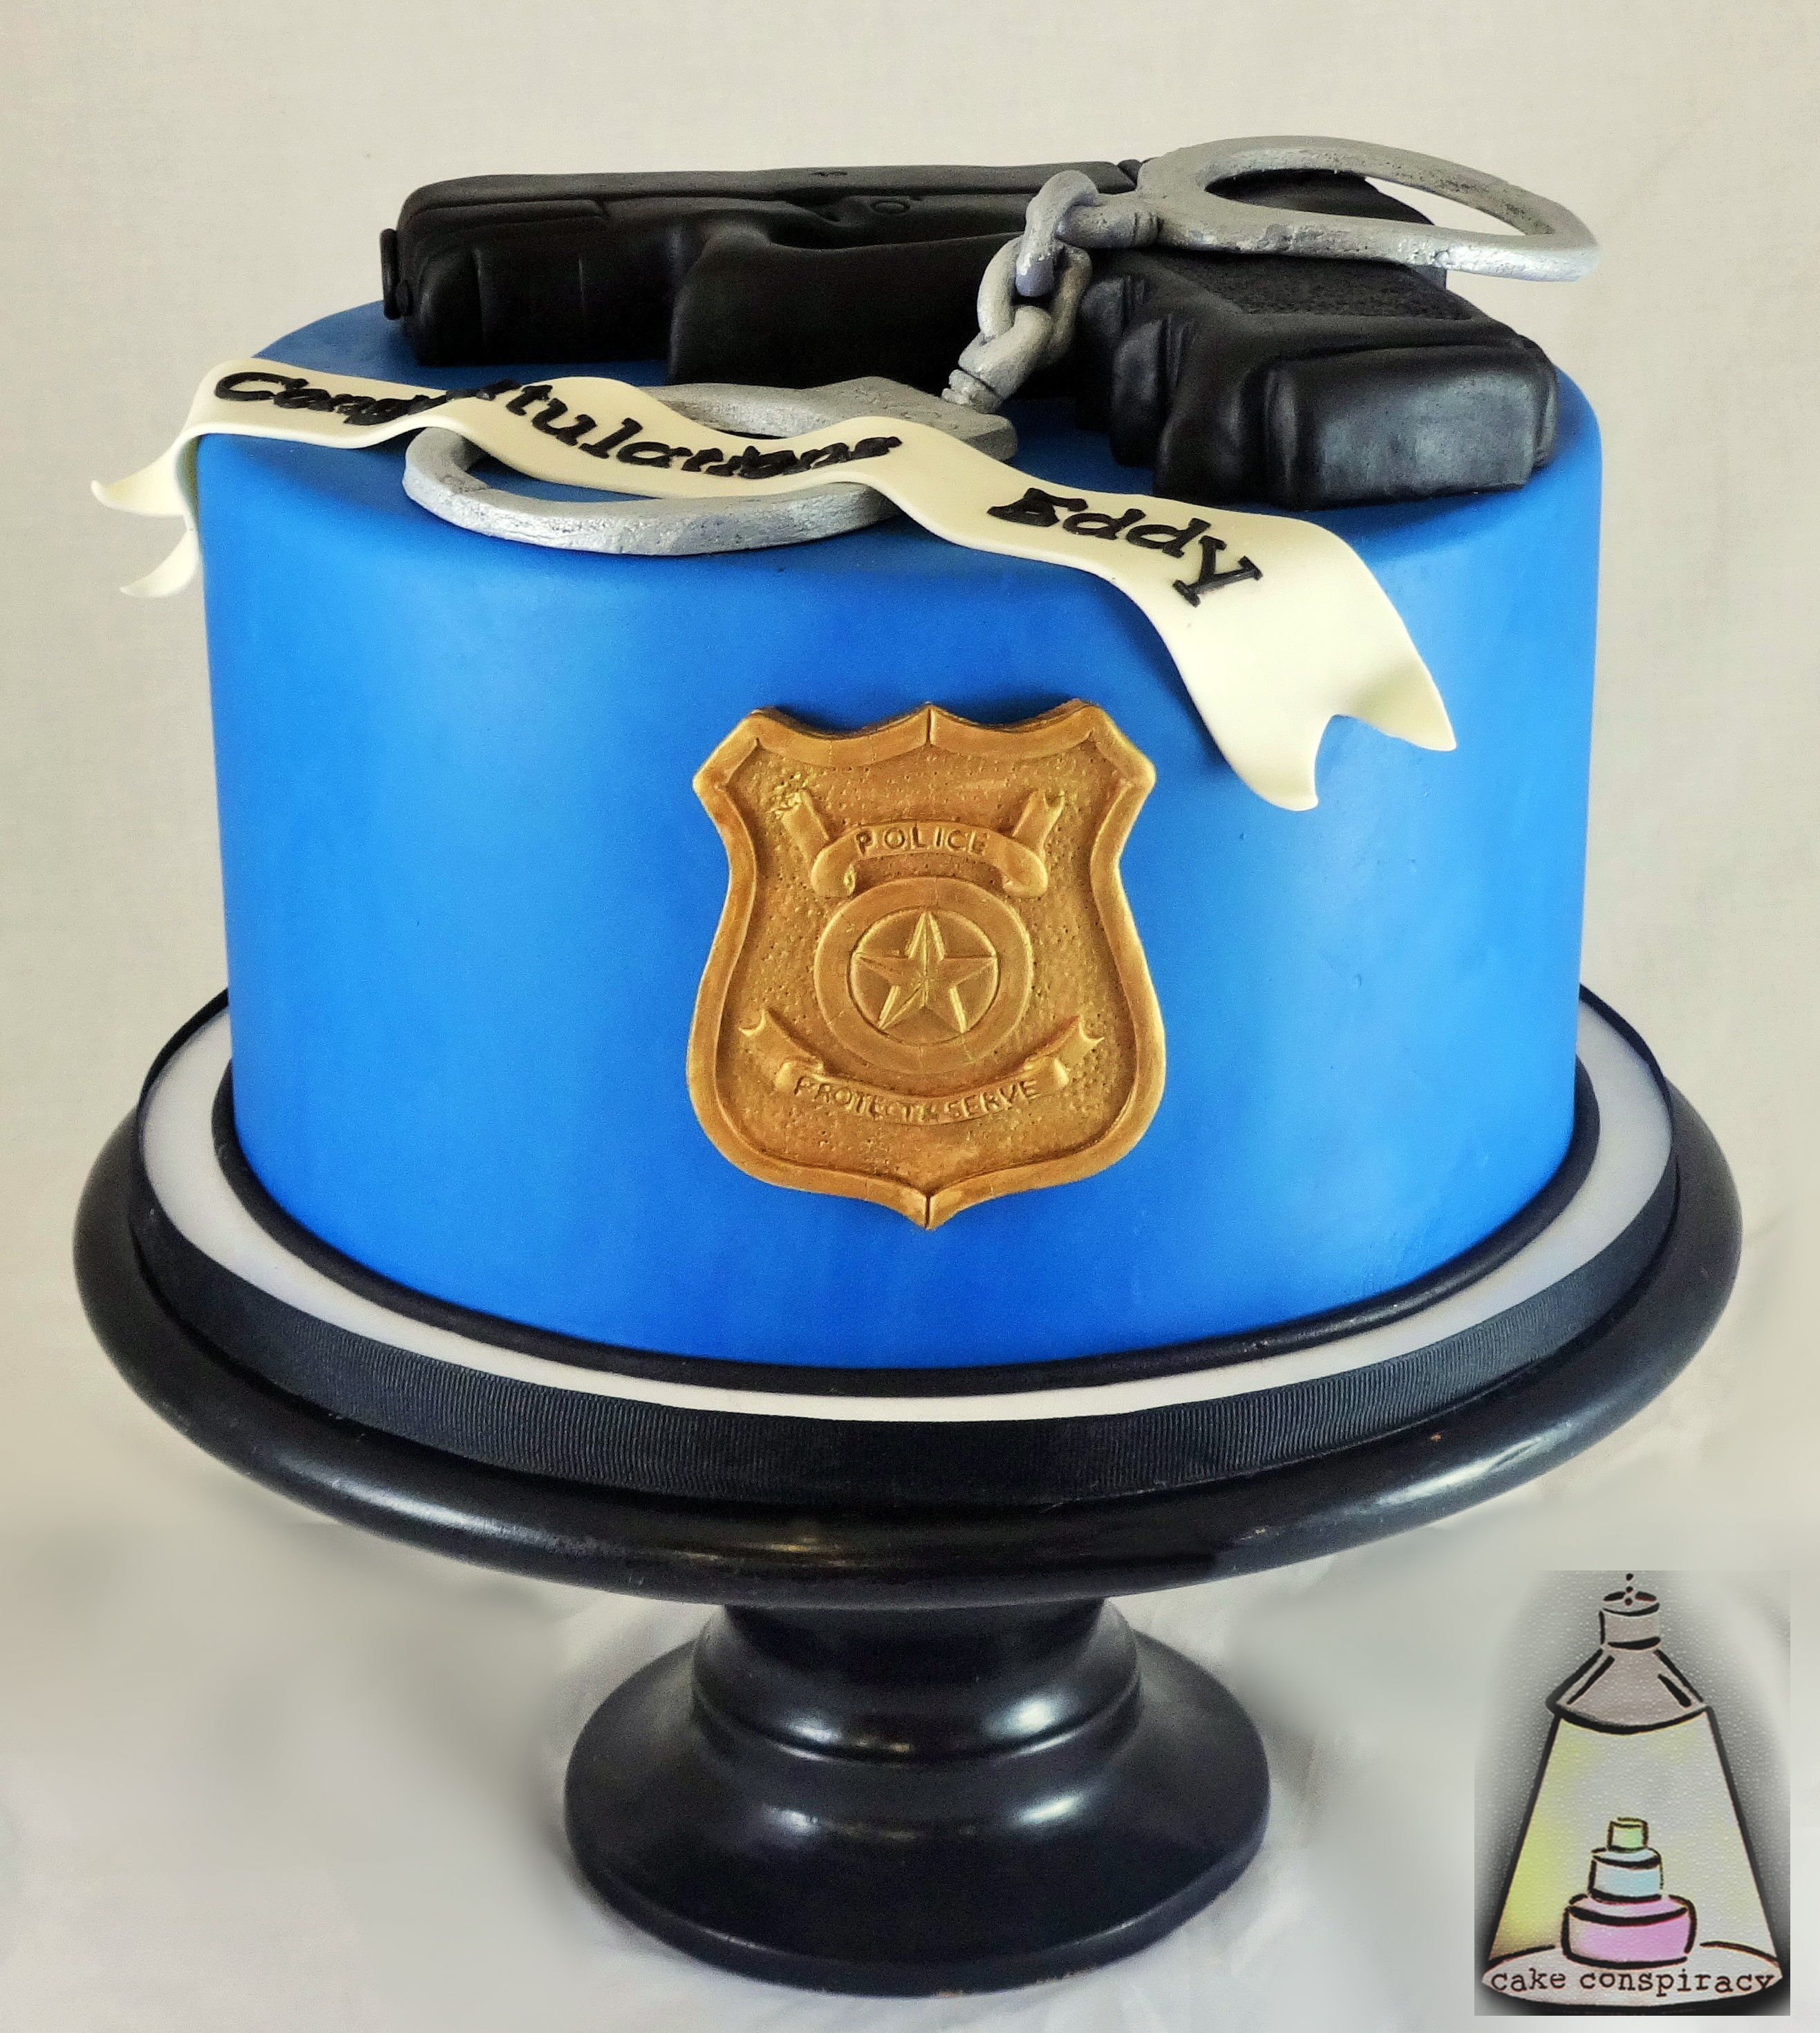 cool police cake cakes pinterest police cakes cake and